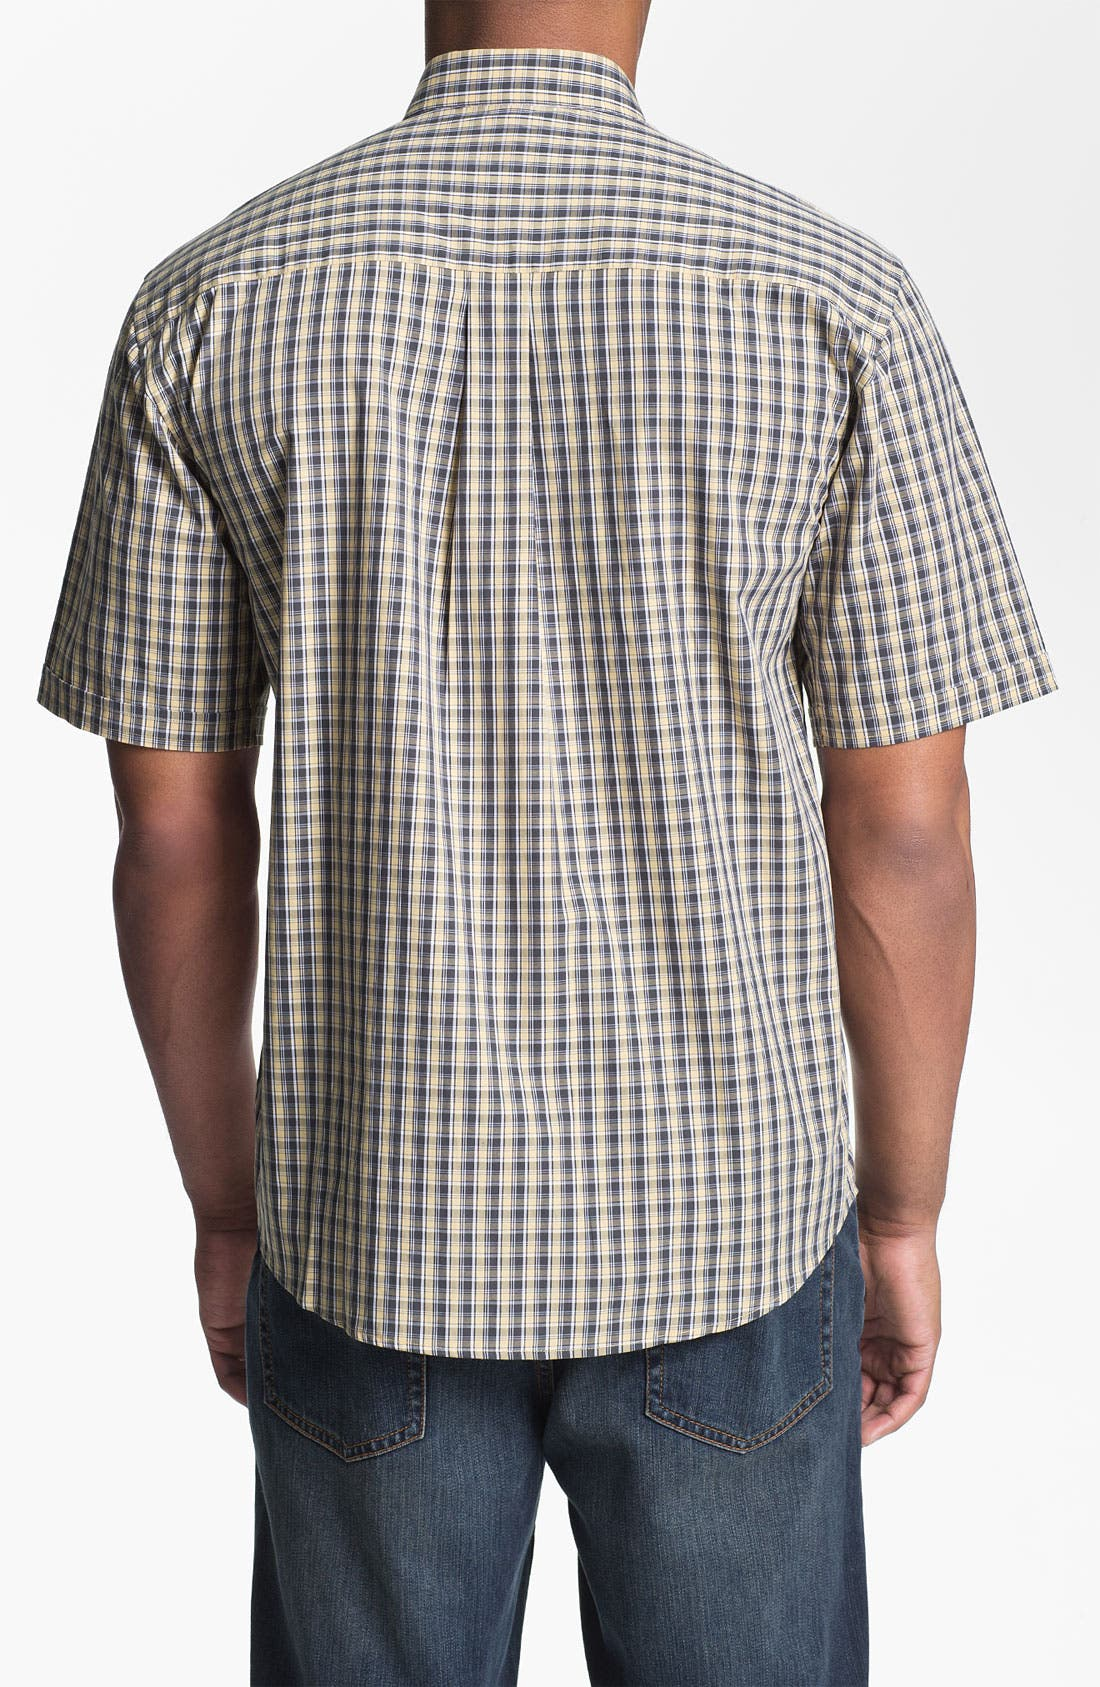 Alternate Image 2  - Cutter & Buck 'Midvale' Check Sport Shirt (Big & Tall)